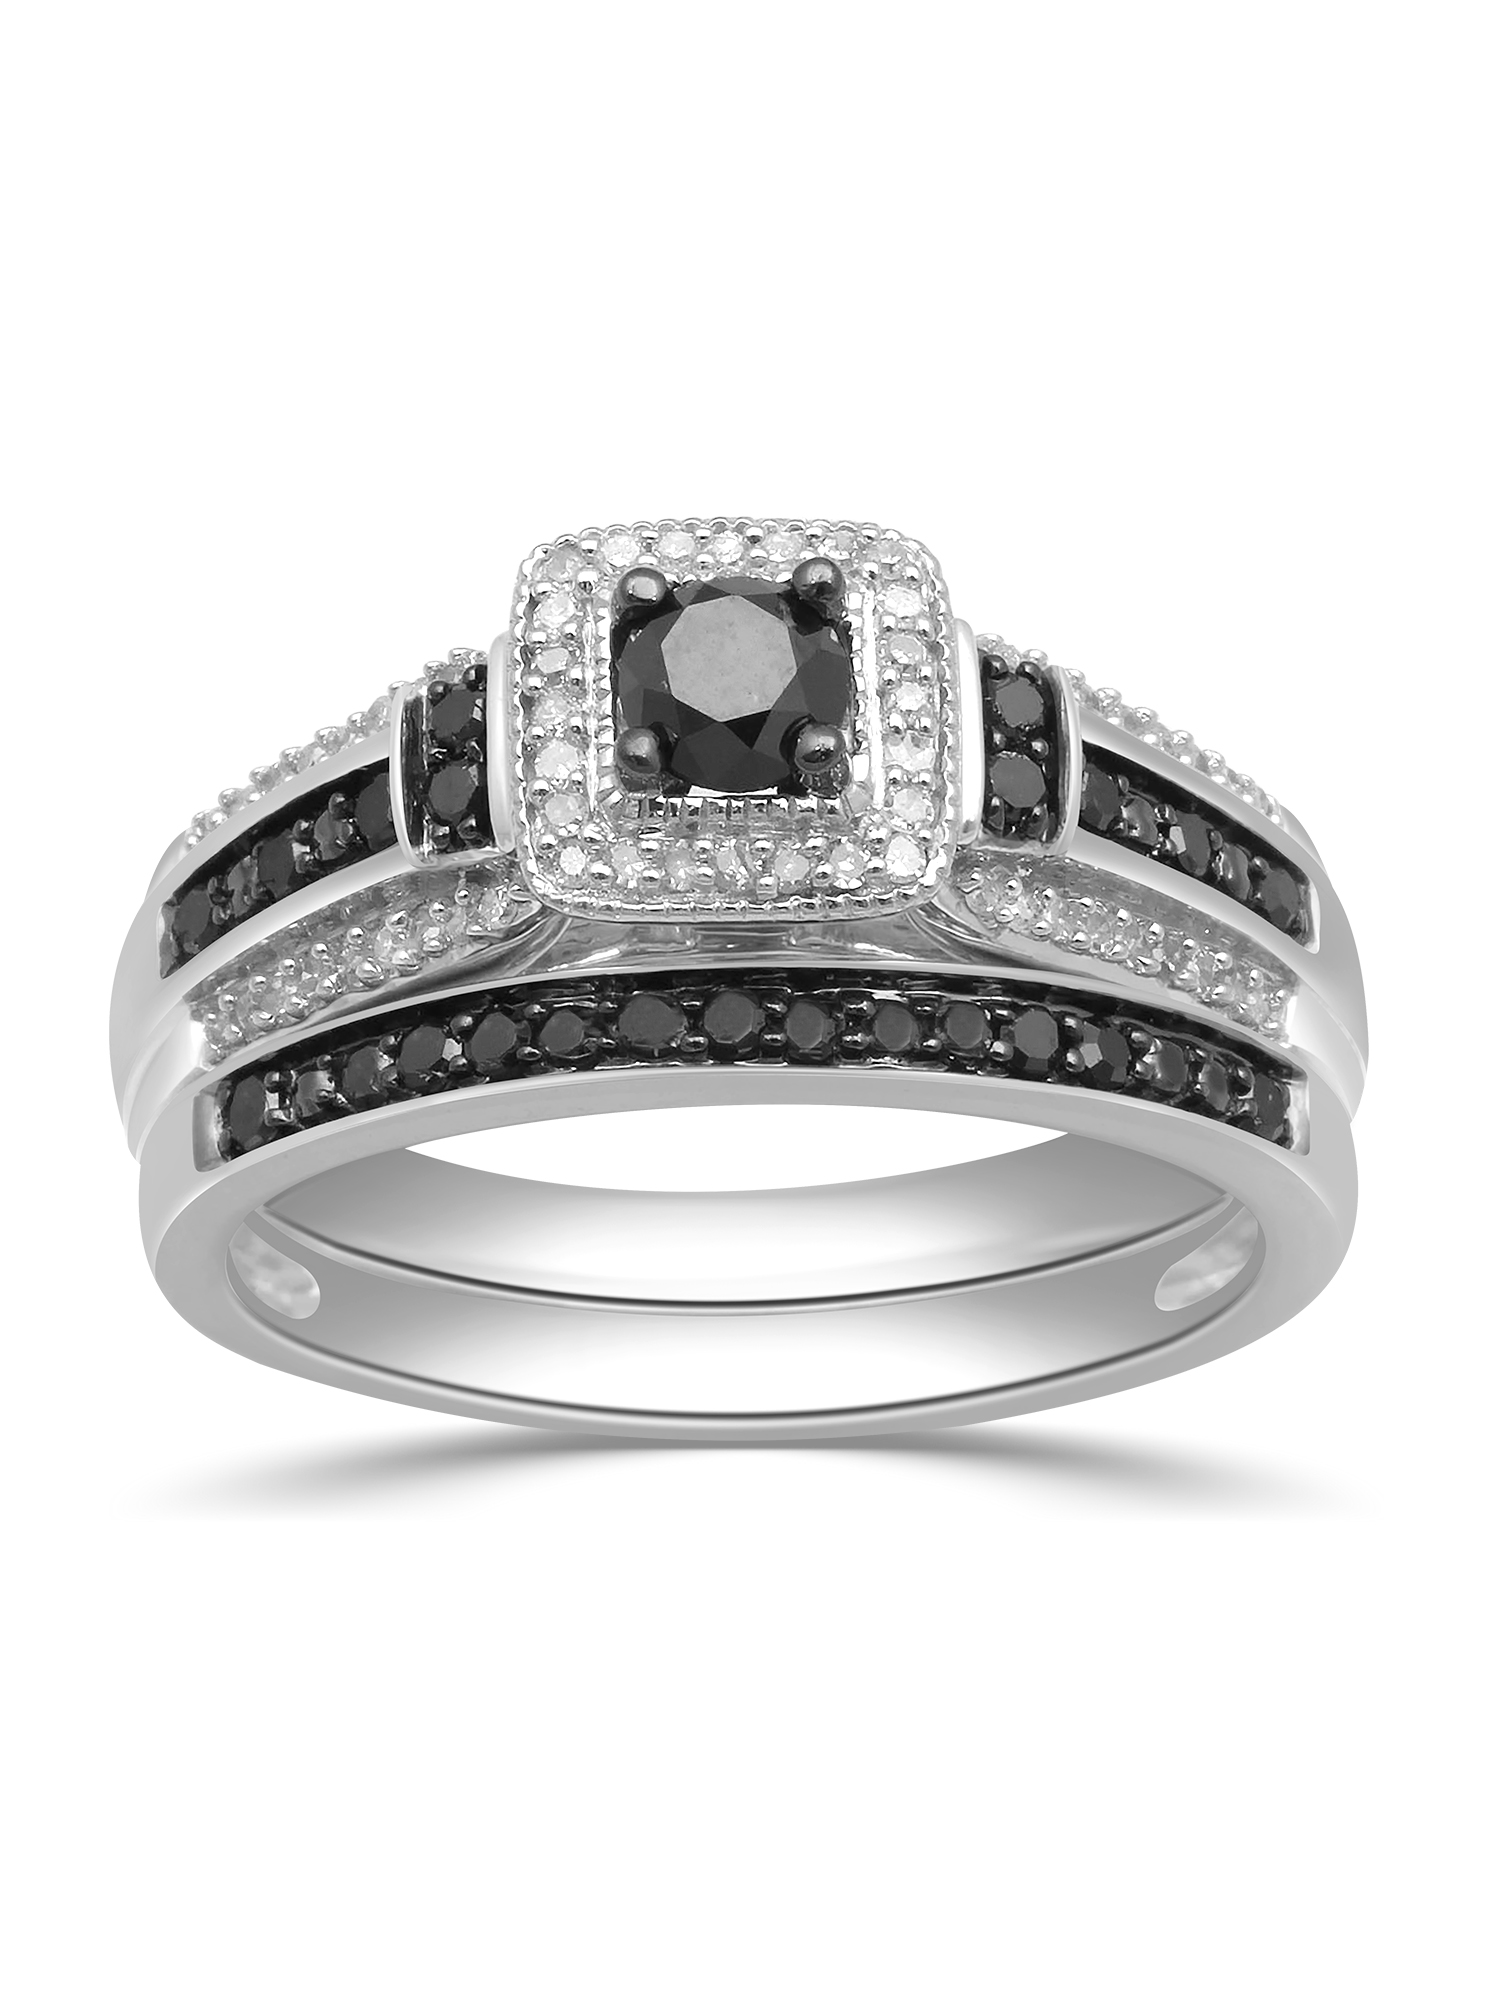 1 2ct. T.W. Black and White Diamond Sterling Silver Bridal Set by Verigold